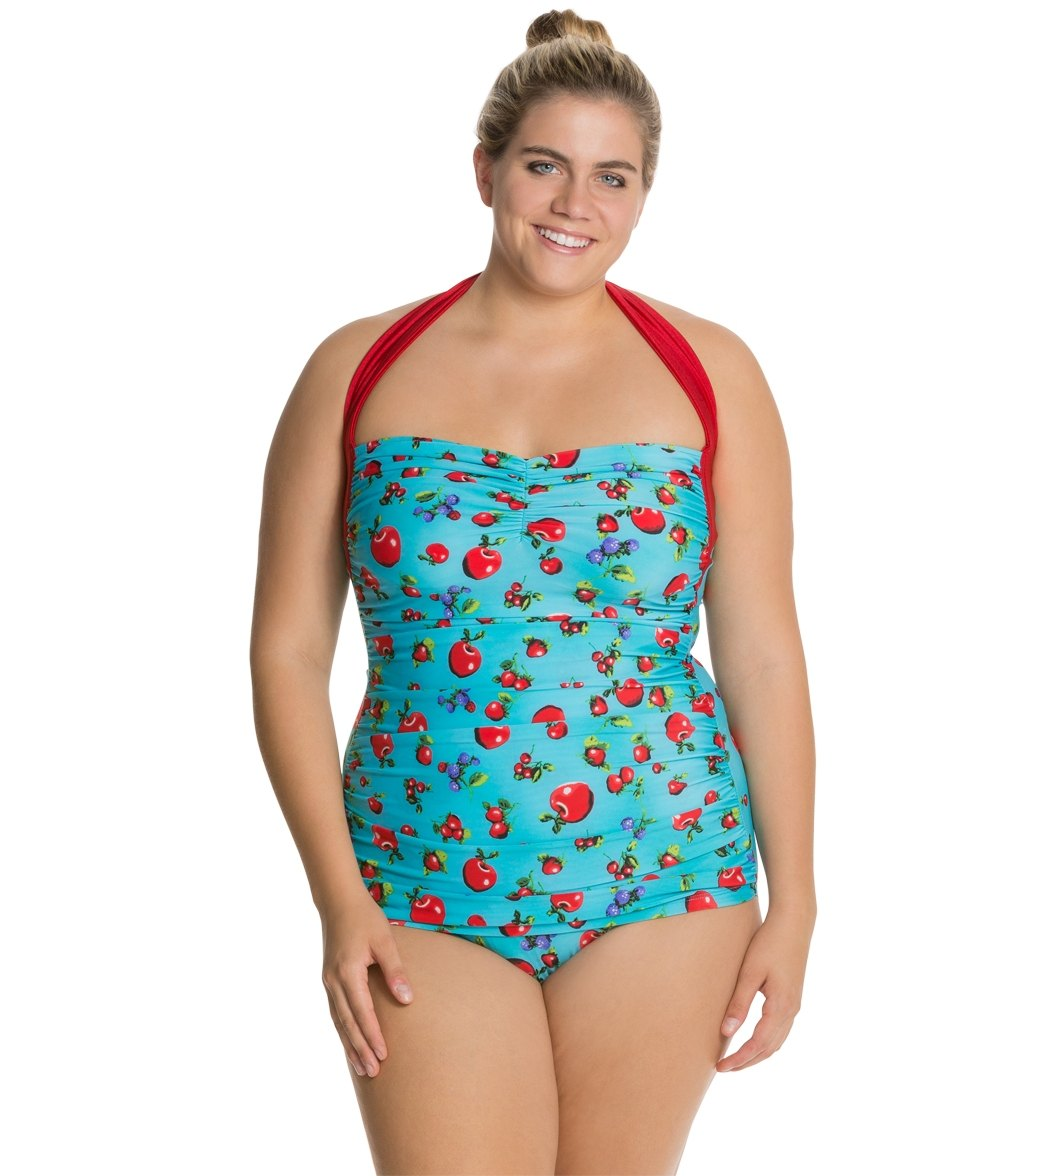 a7e4ce493ca Girlhowdy Plus Annie One Piece Swimsuit at SwimOutlet.com - Free Shipping